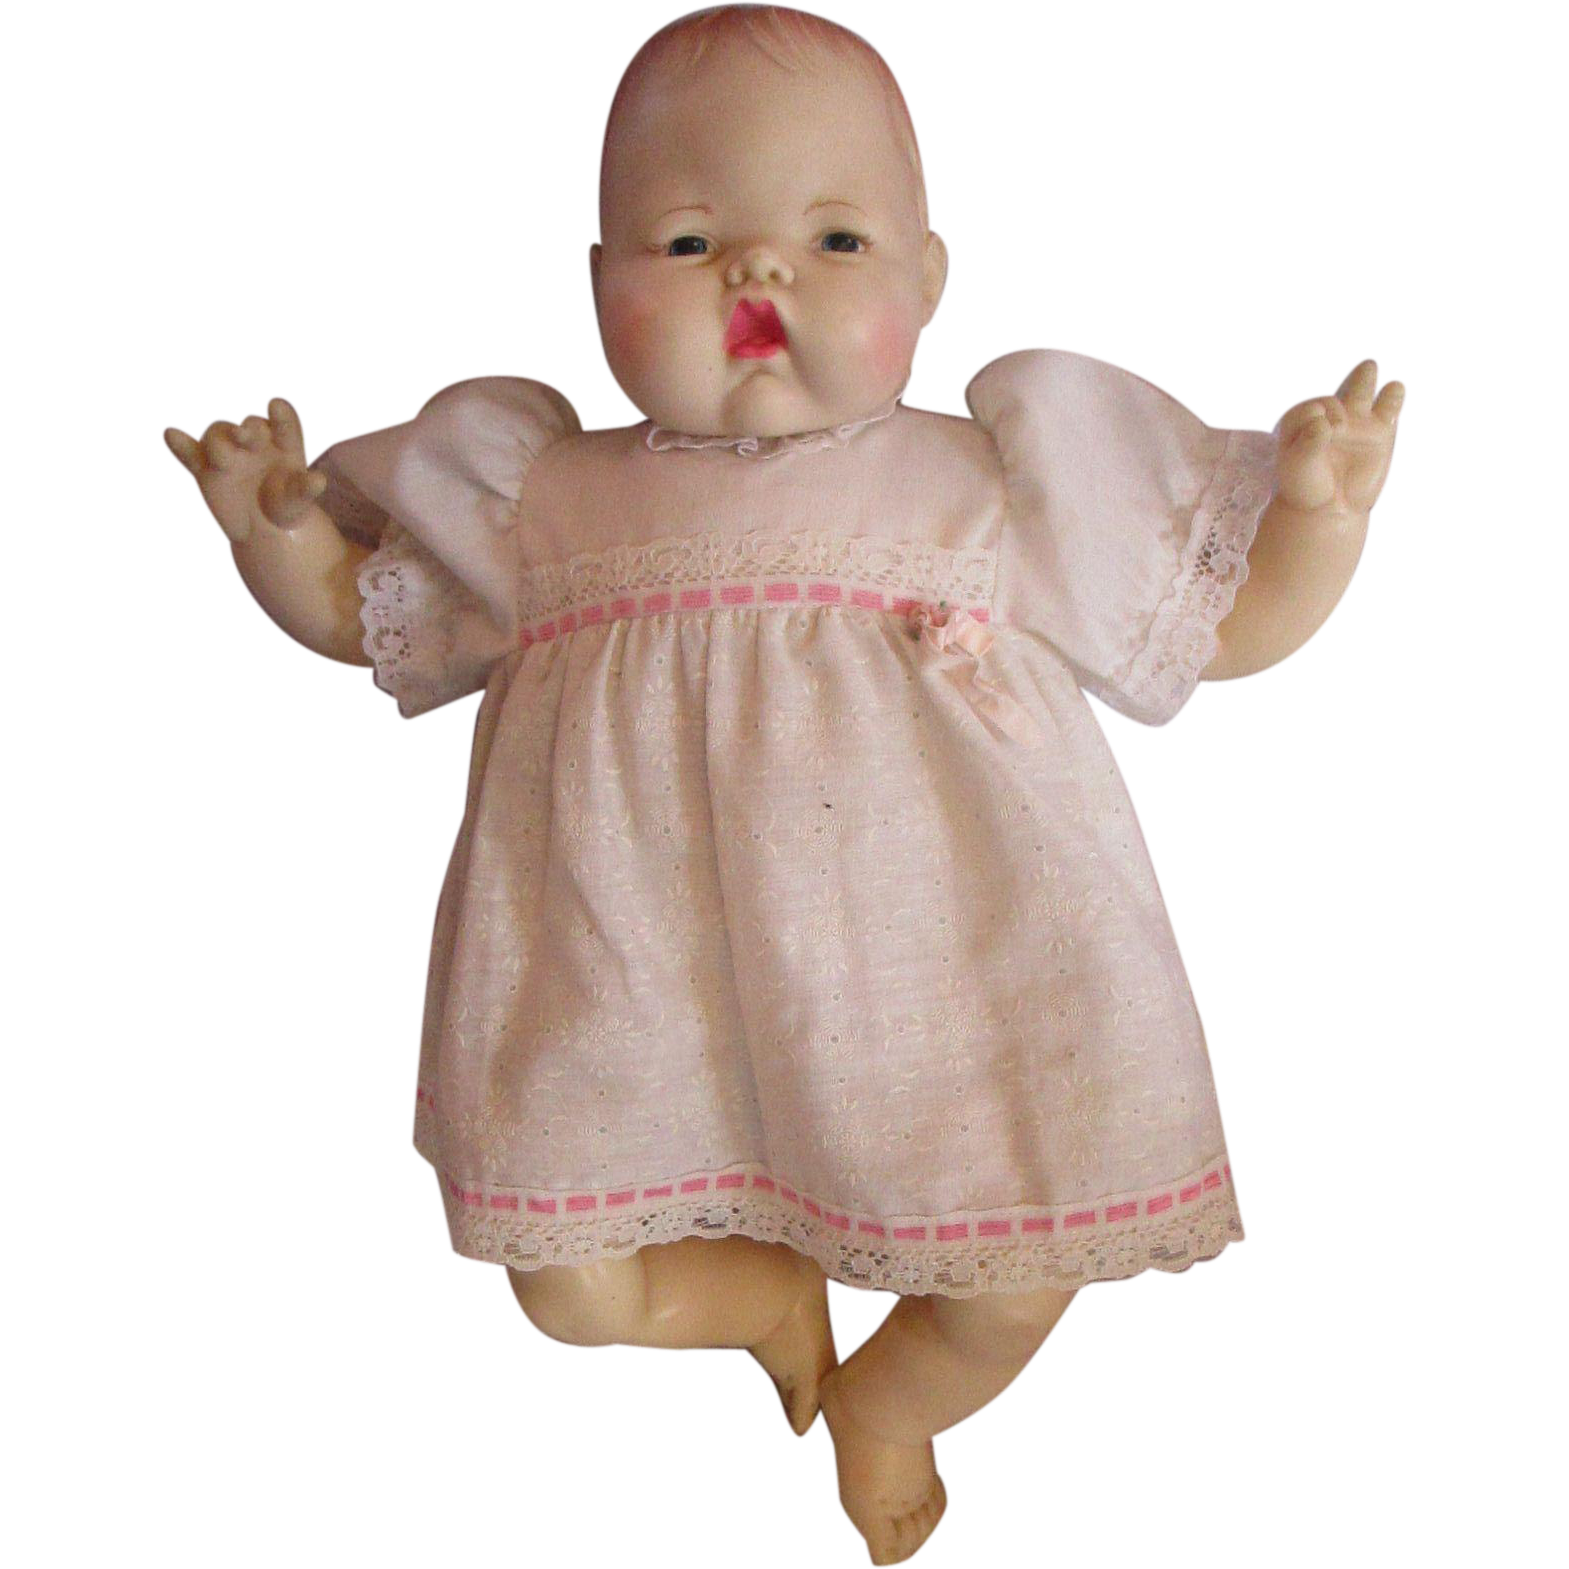 Thumbelina Doll 1980 S Ideal Baby Doll 1983 In Original Dress 17 Newborn Baby Dolls Dolls Thumbelina